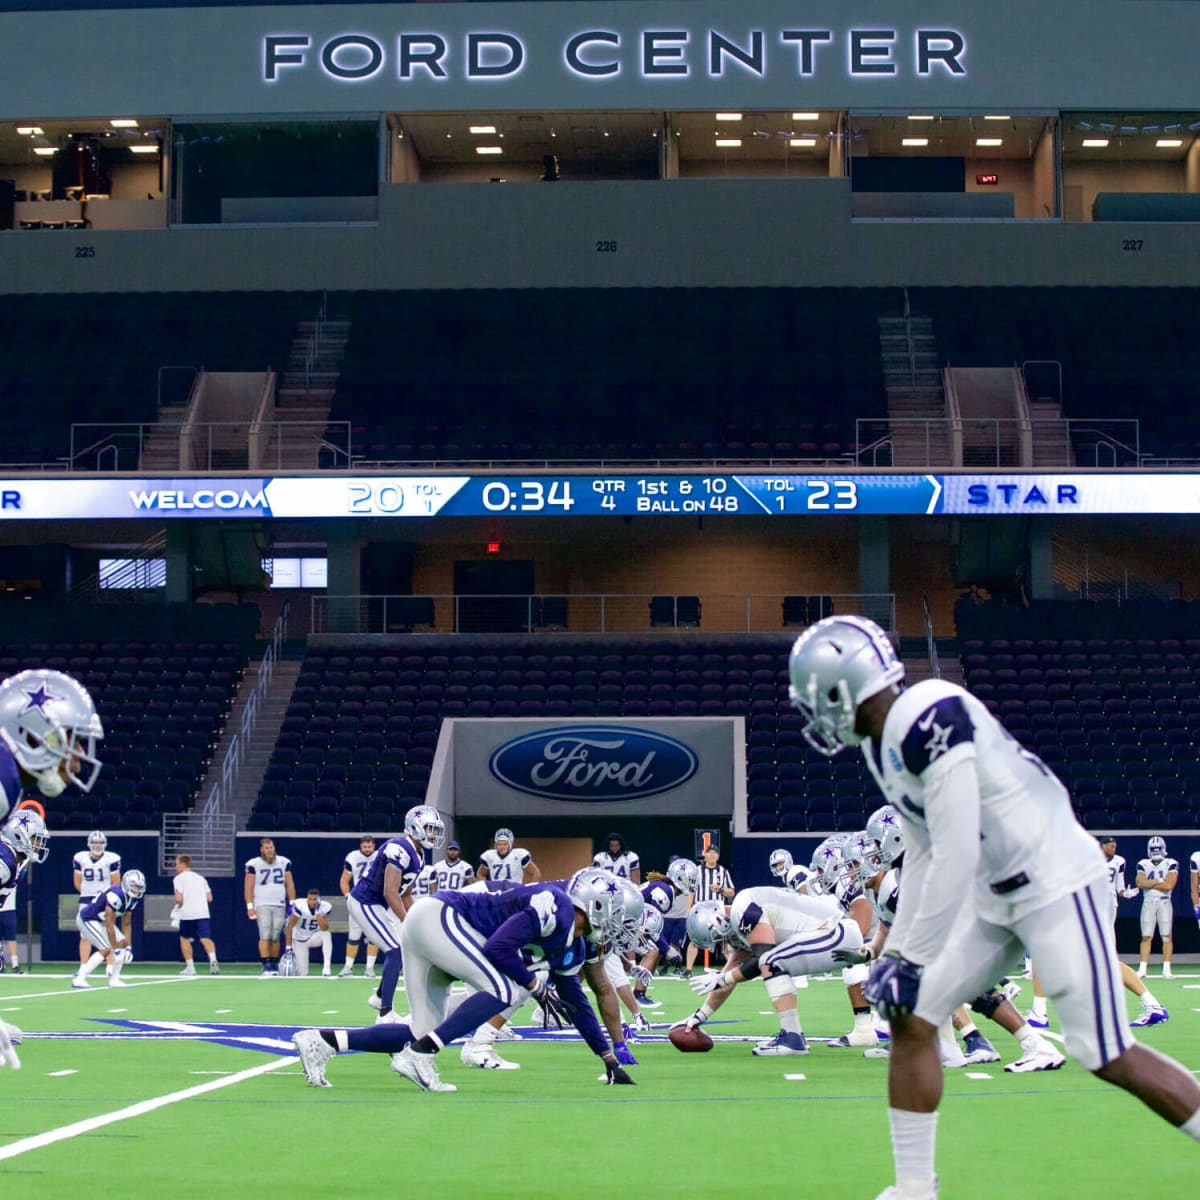 Dallas Cowboys at Ford Center in Frisco, Star